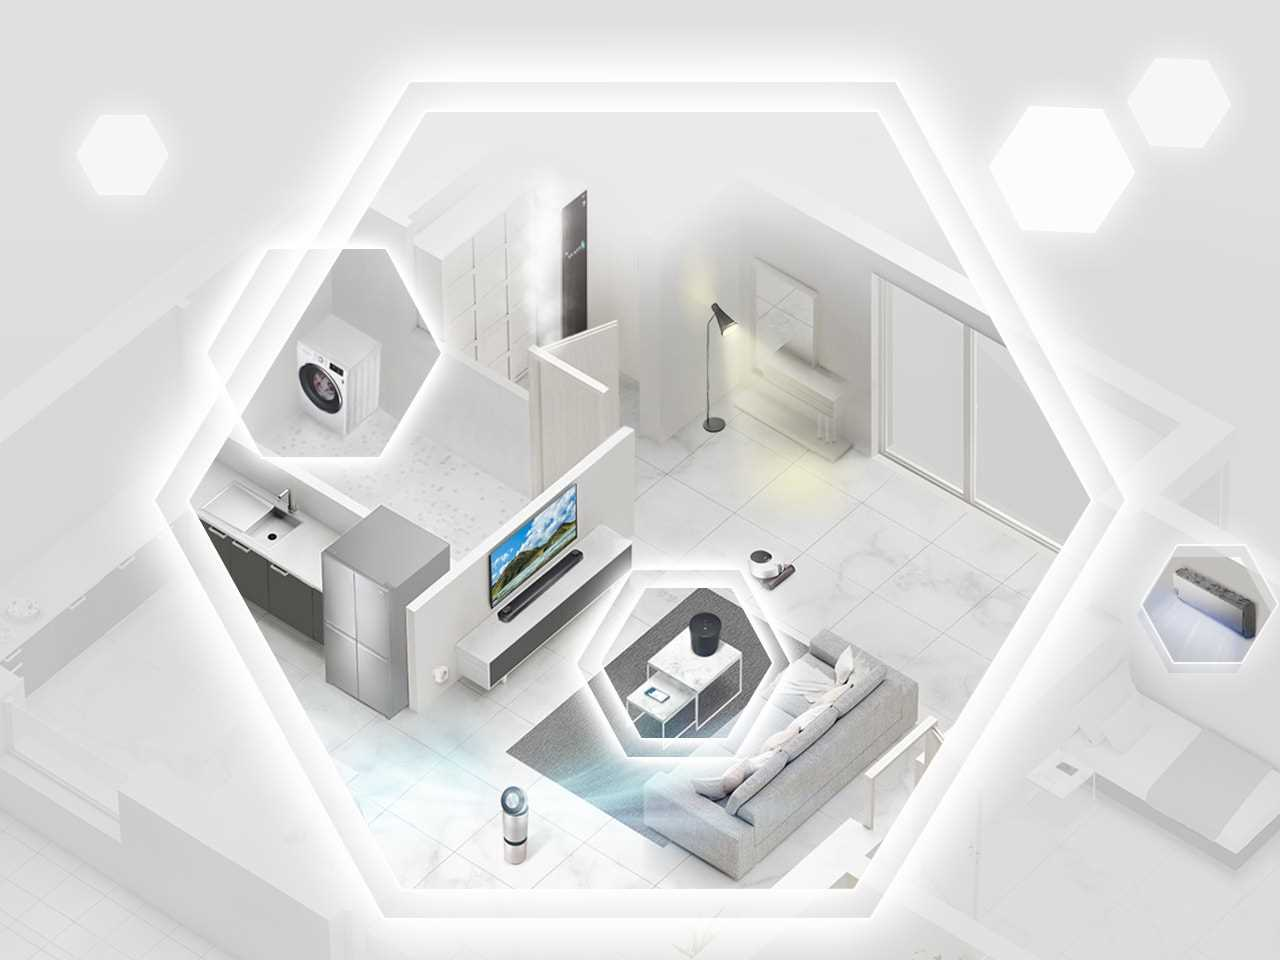 lg_magazine_banner_lg-thinq-_smart-home2_1280_960-min.jpg